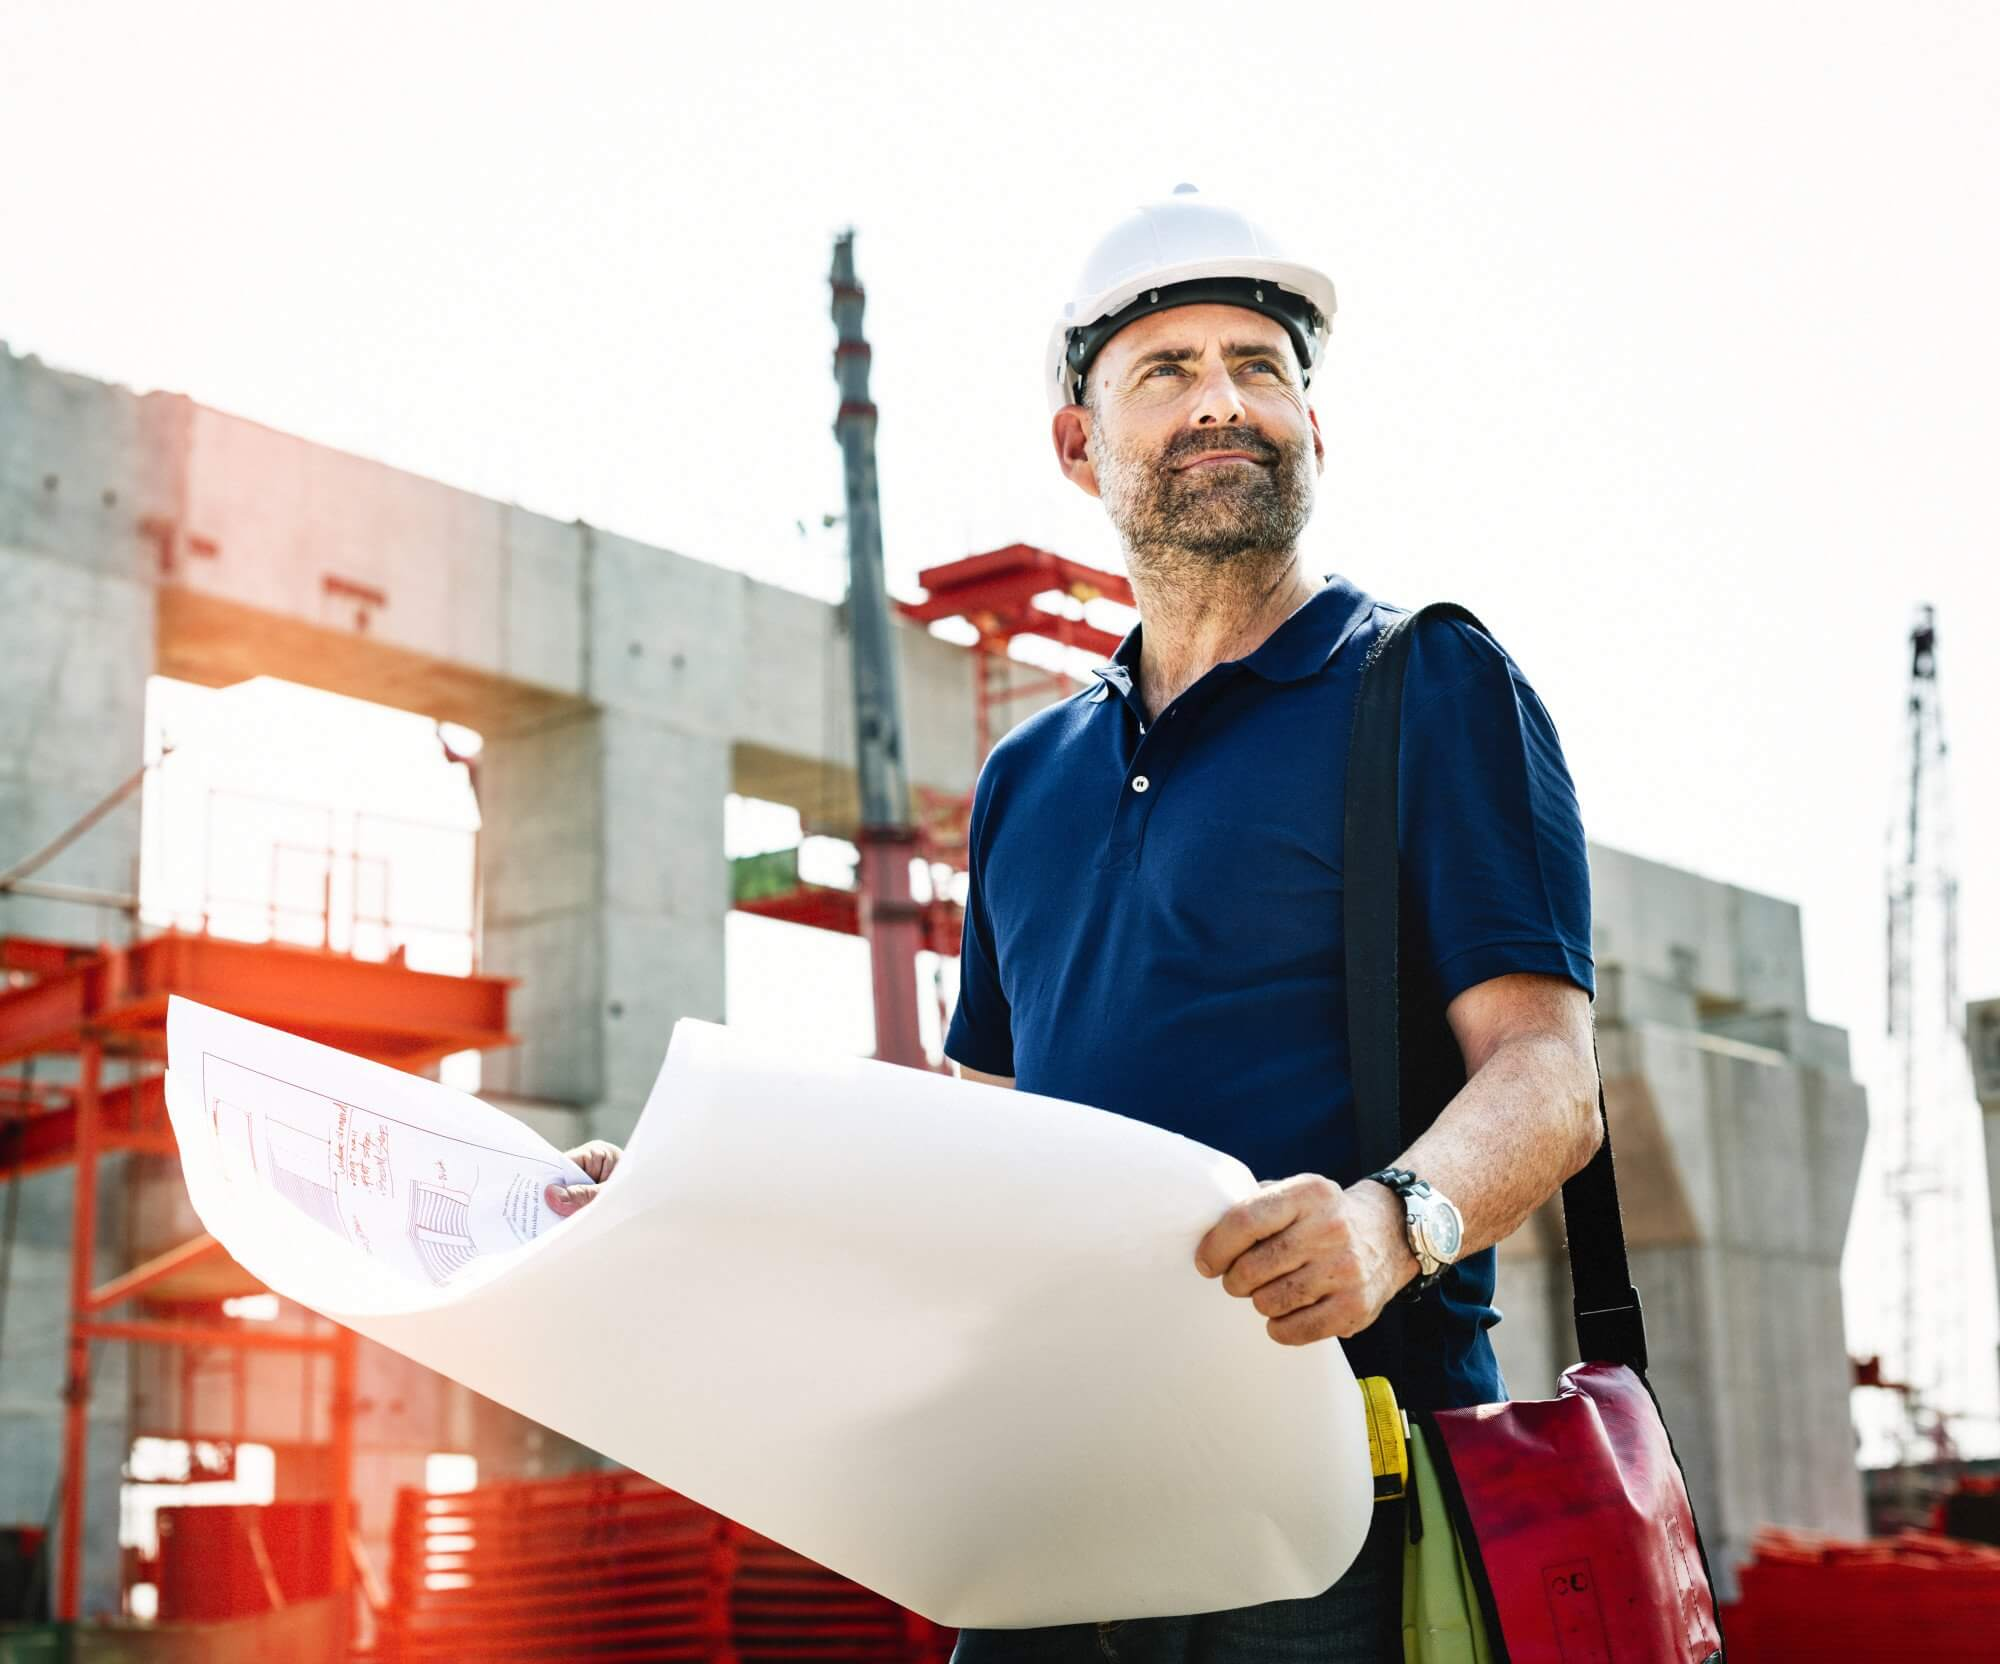 What To Ask Your Contractor: 10 Questions To Ask A General Contractor